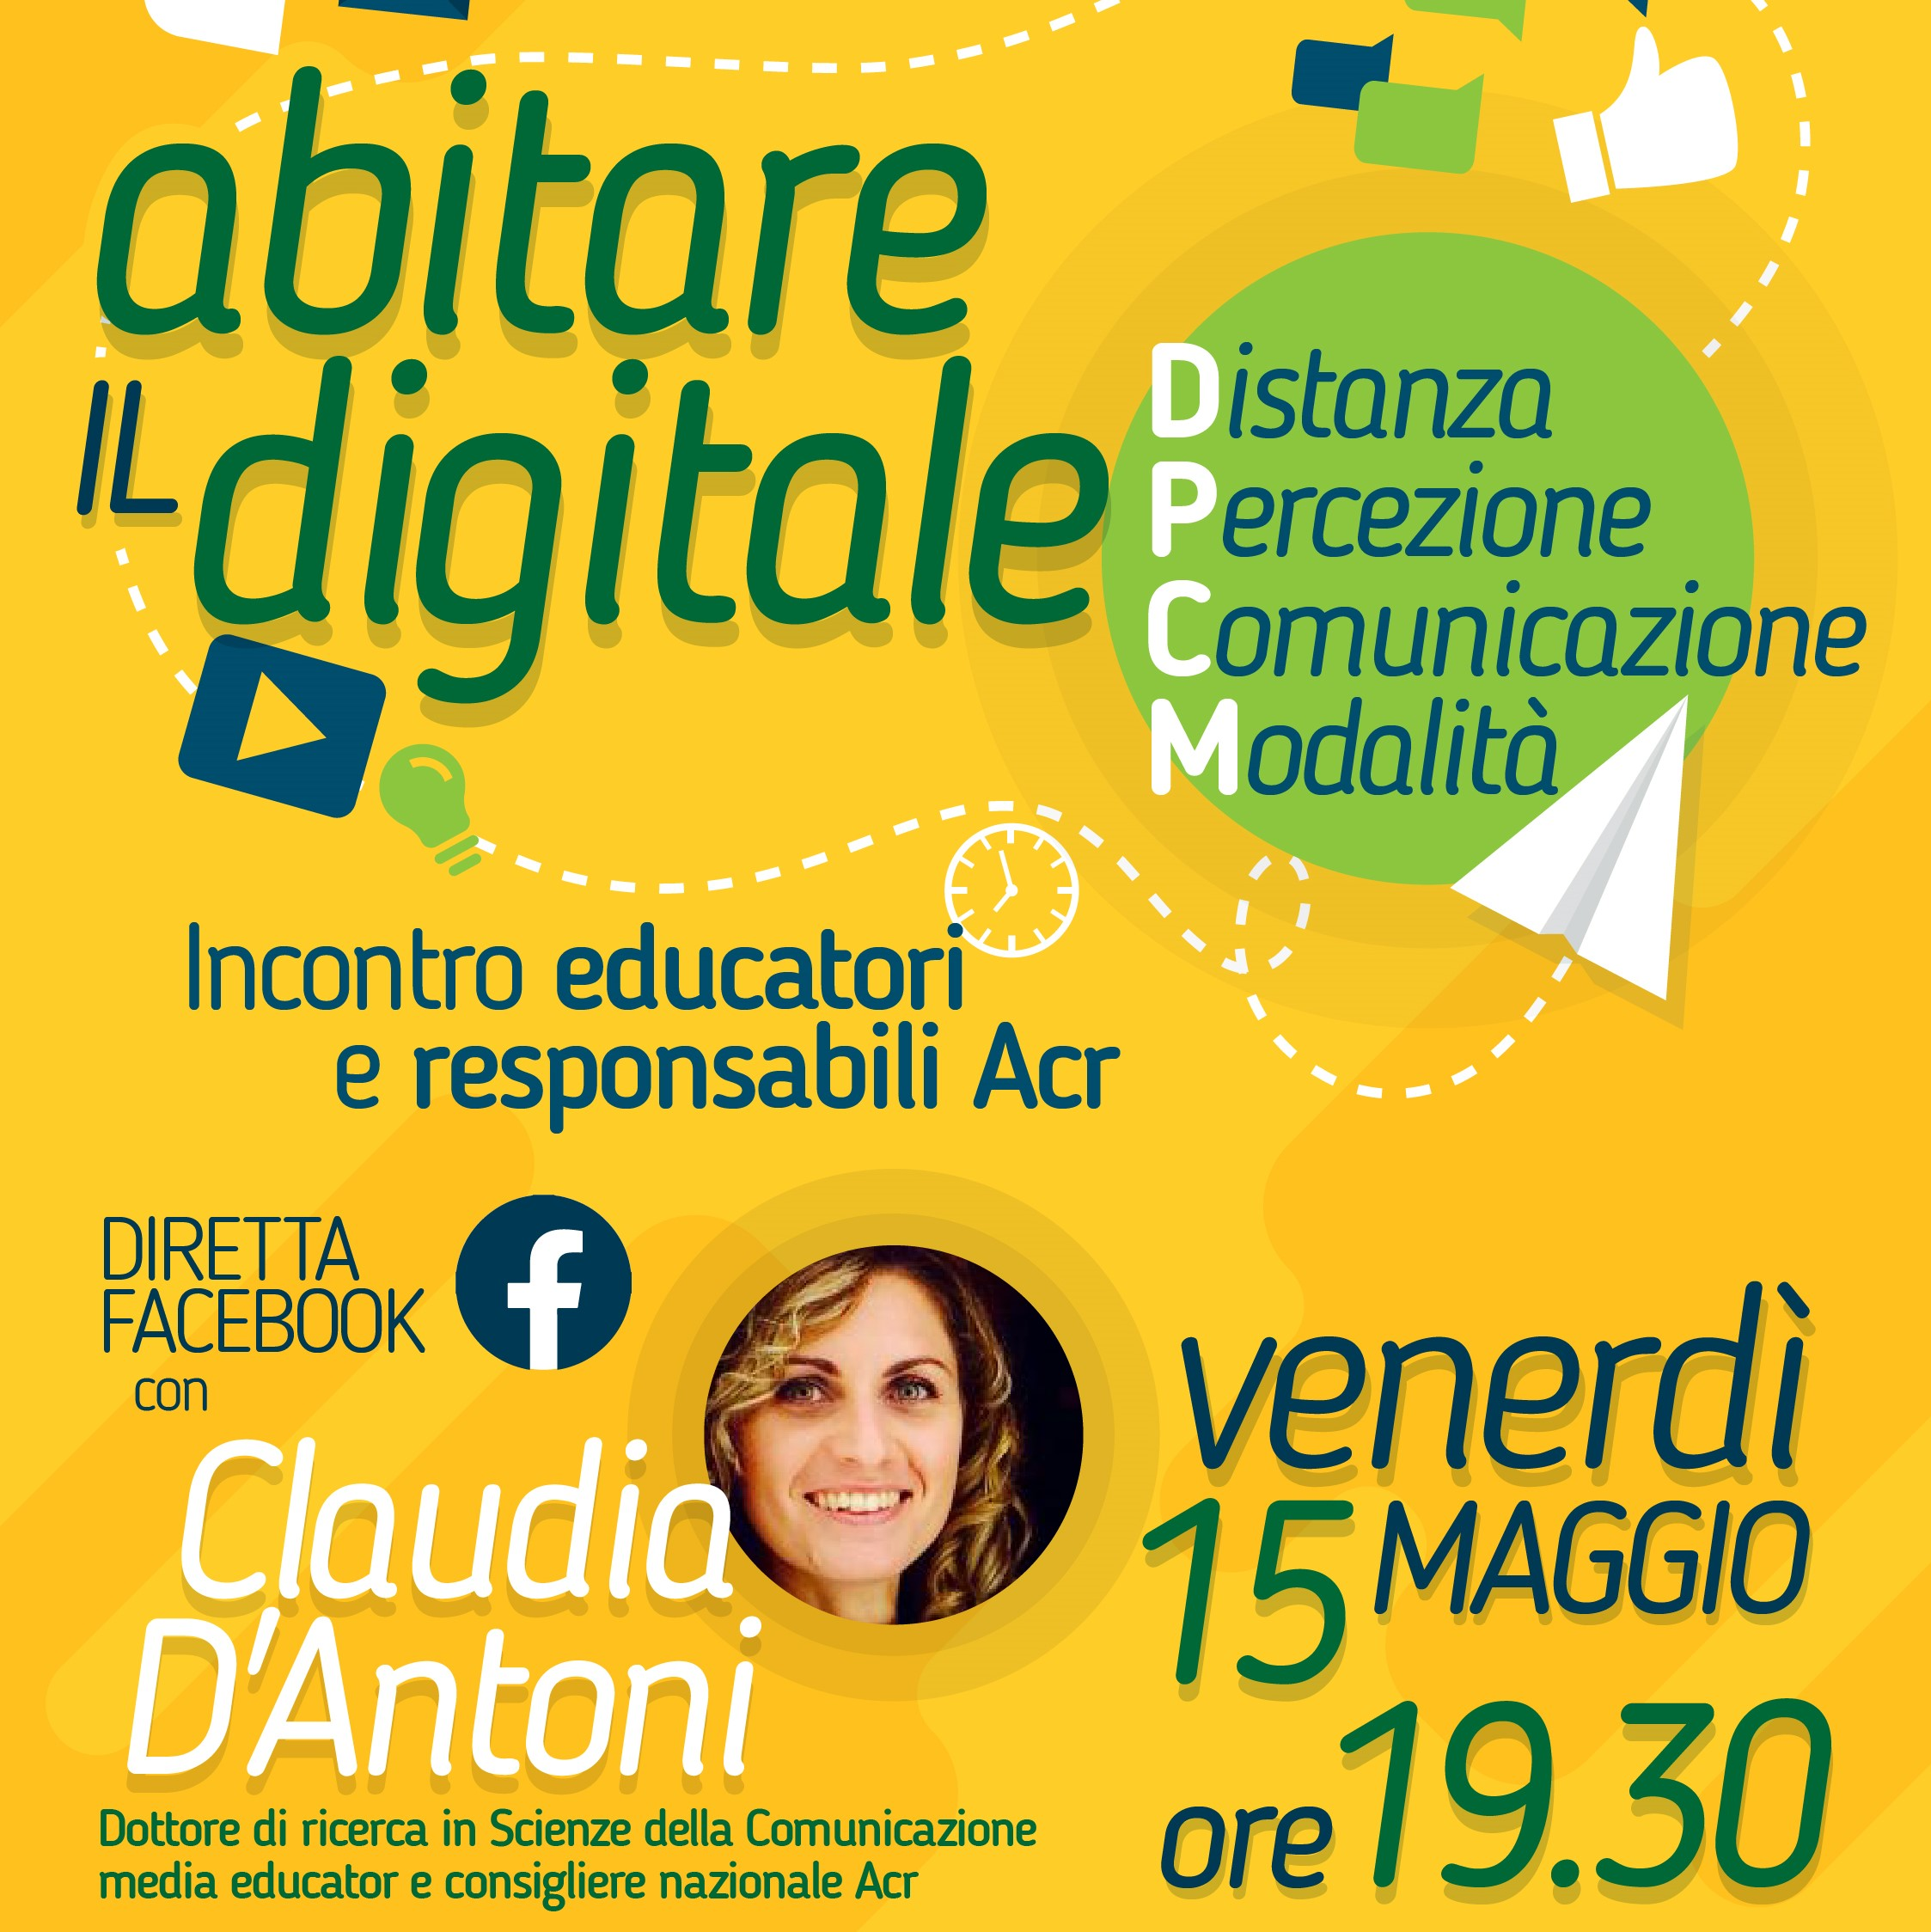 Abitare il digitale